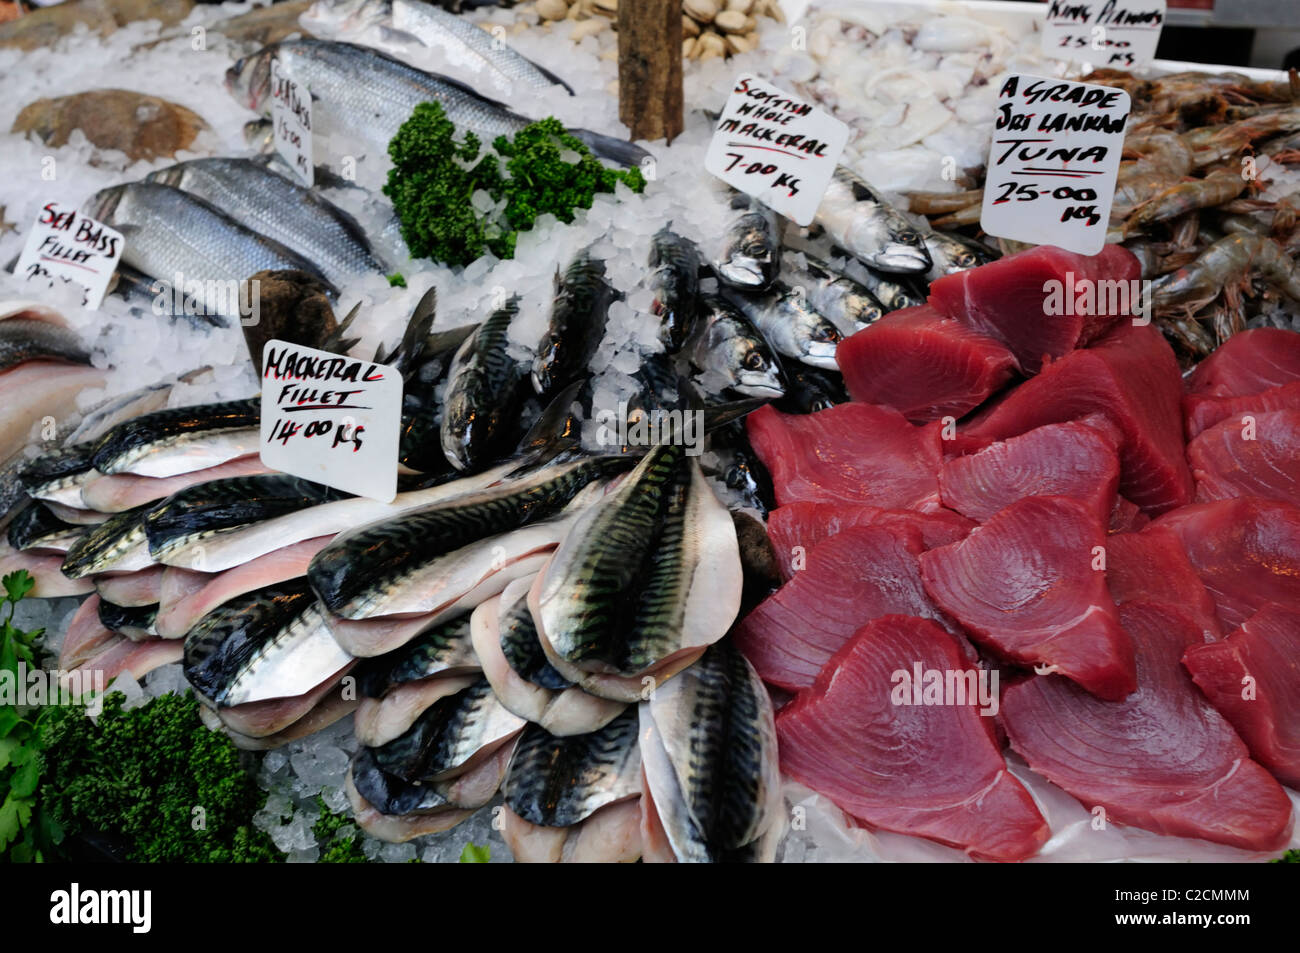 Mackerel and Sri Lankan Tuna on a Fishmongers stall at Borough Market, Southwark, London, England, UK - Stock Image